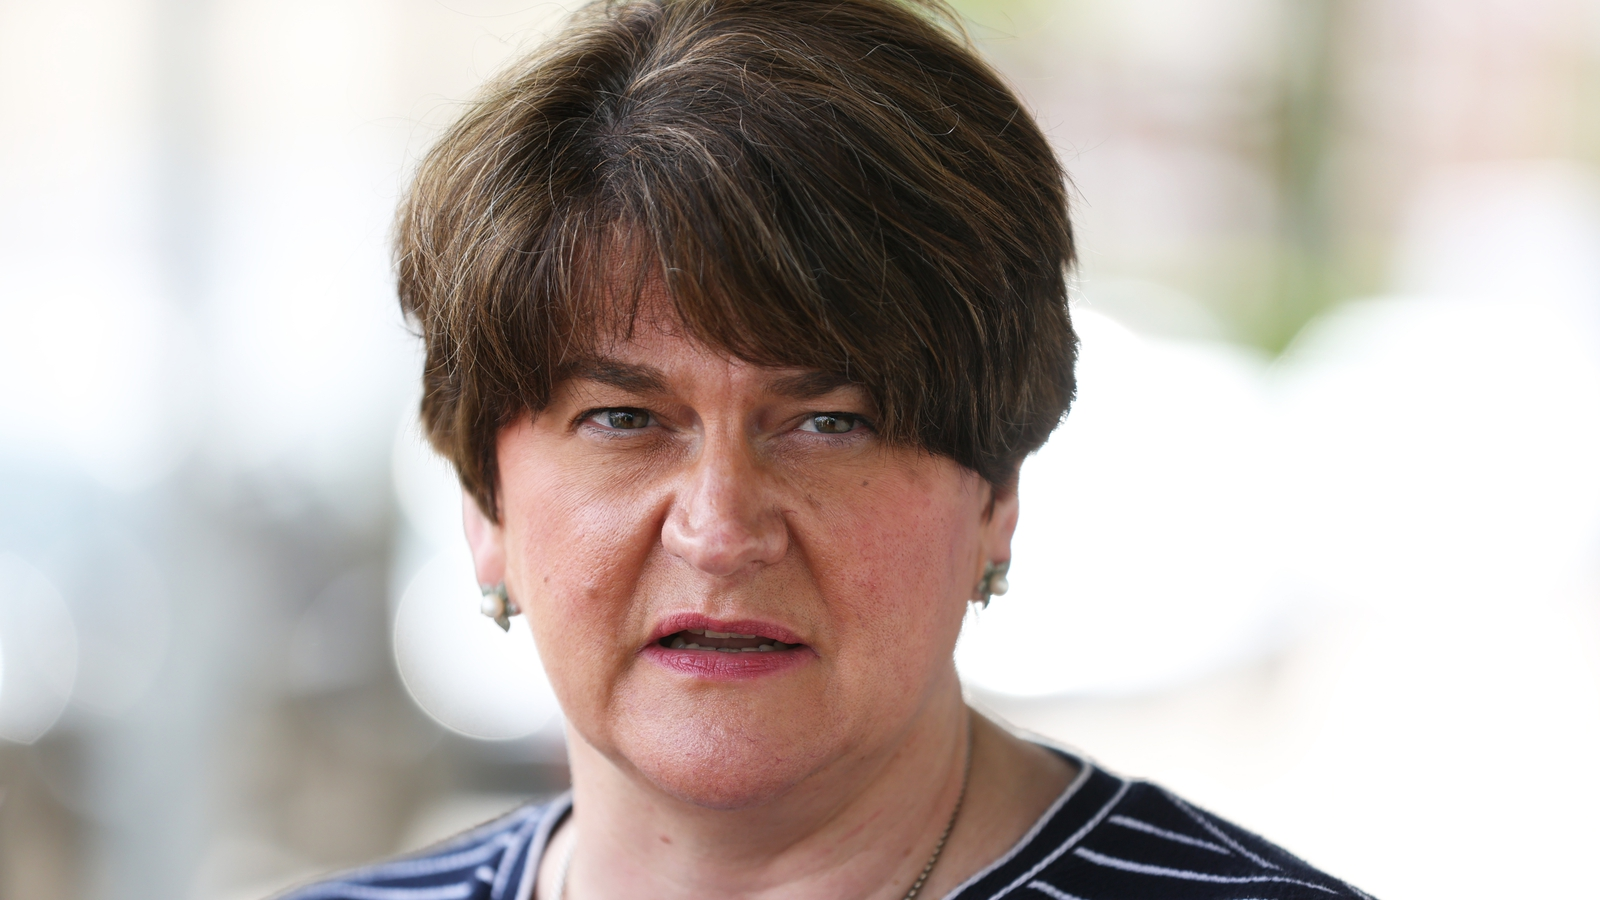 Former DUP leader Foster joins GB News as contributor